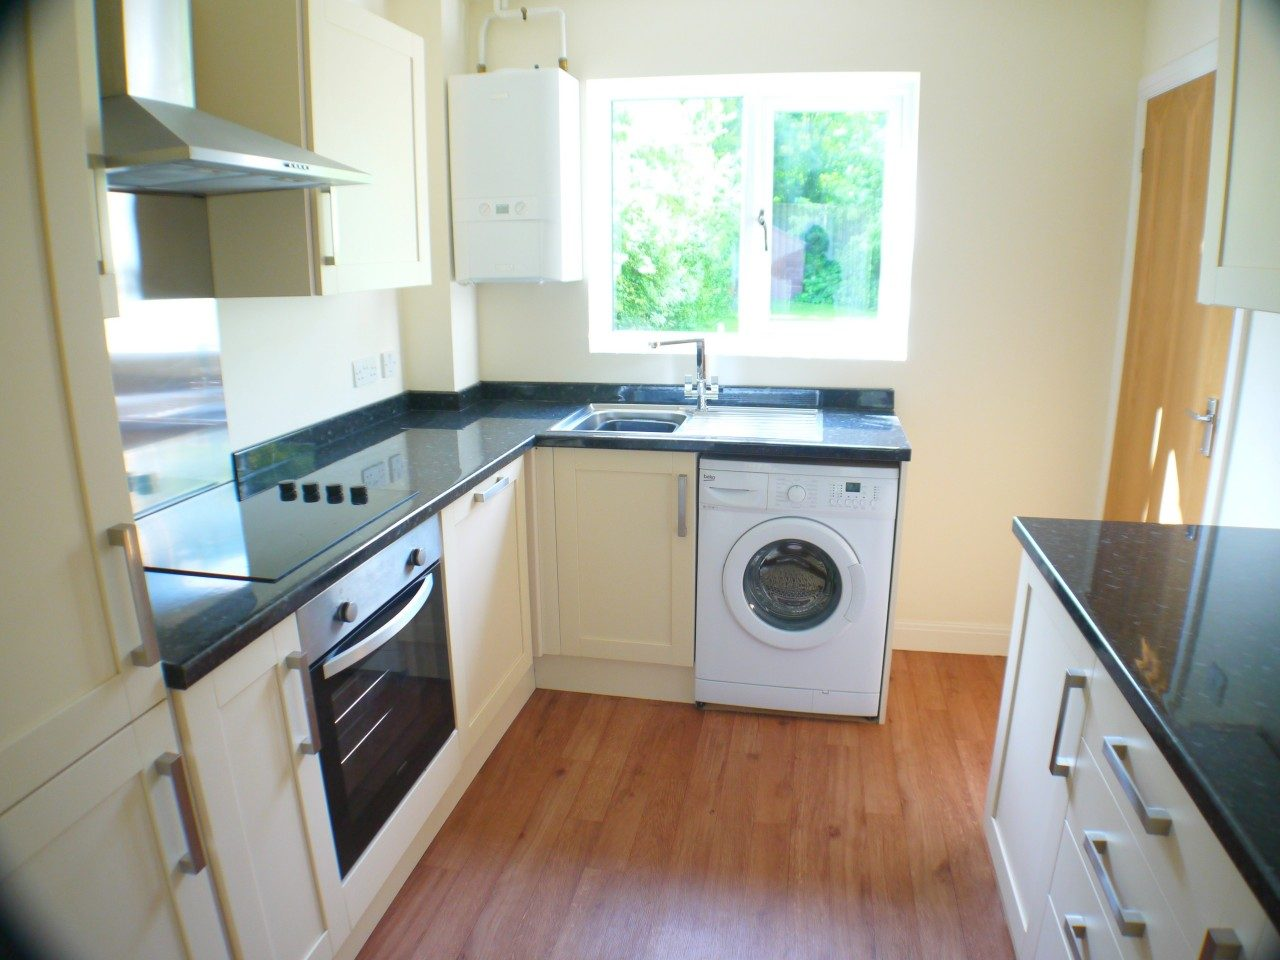 Ensuite Room To Rent In Milton Keynes